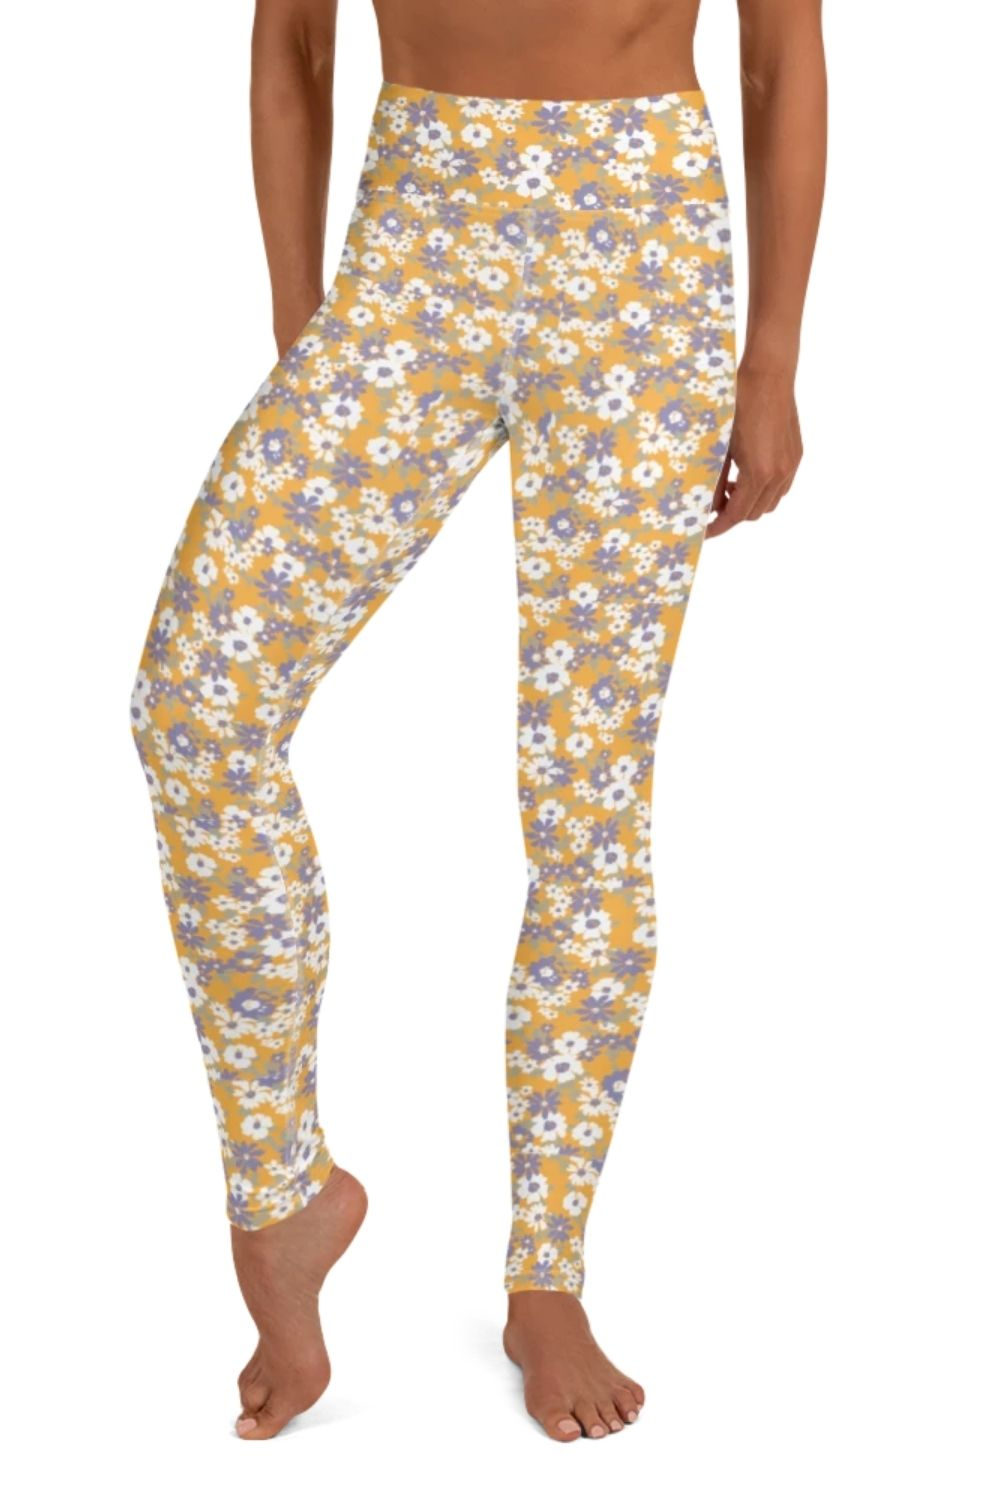 Woodstock Yoga Leggings